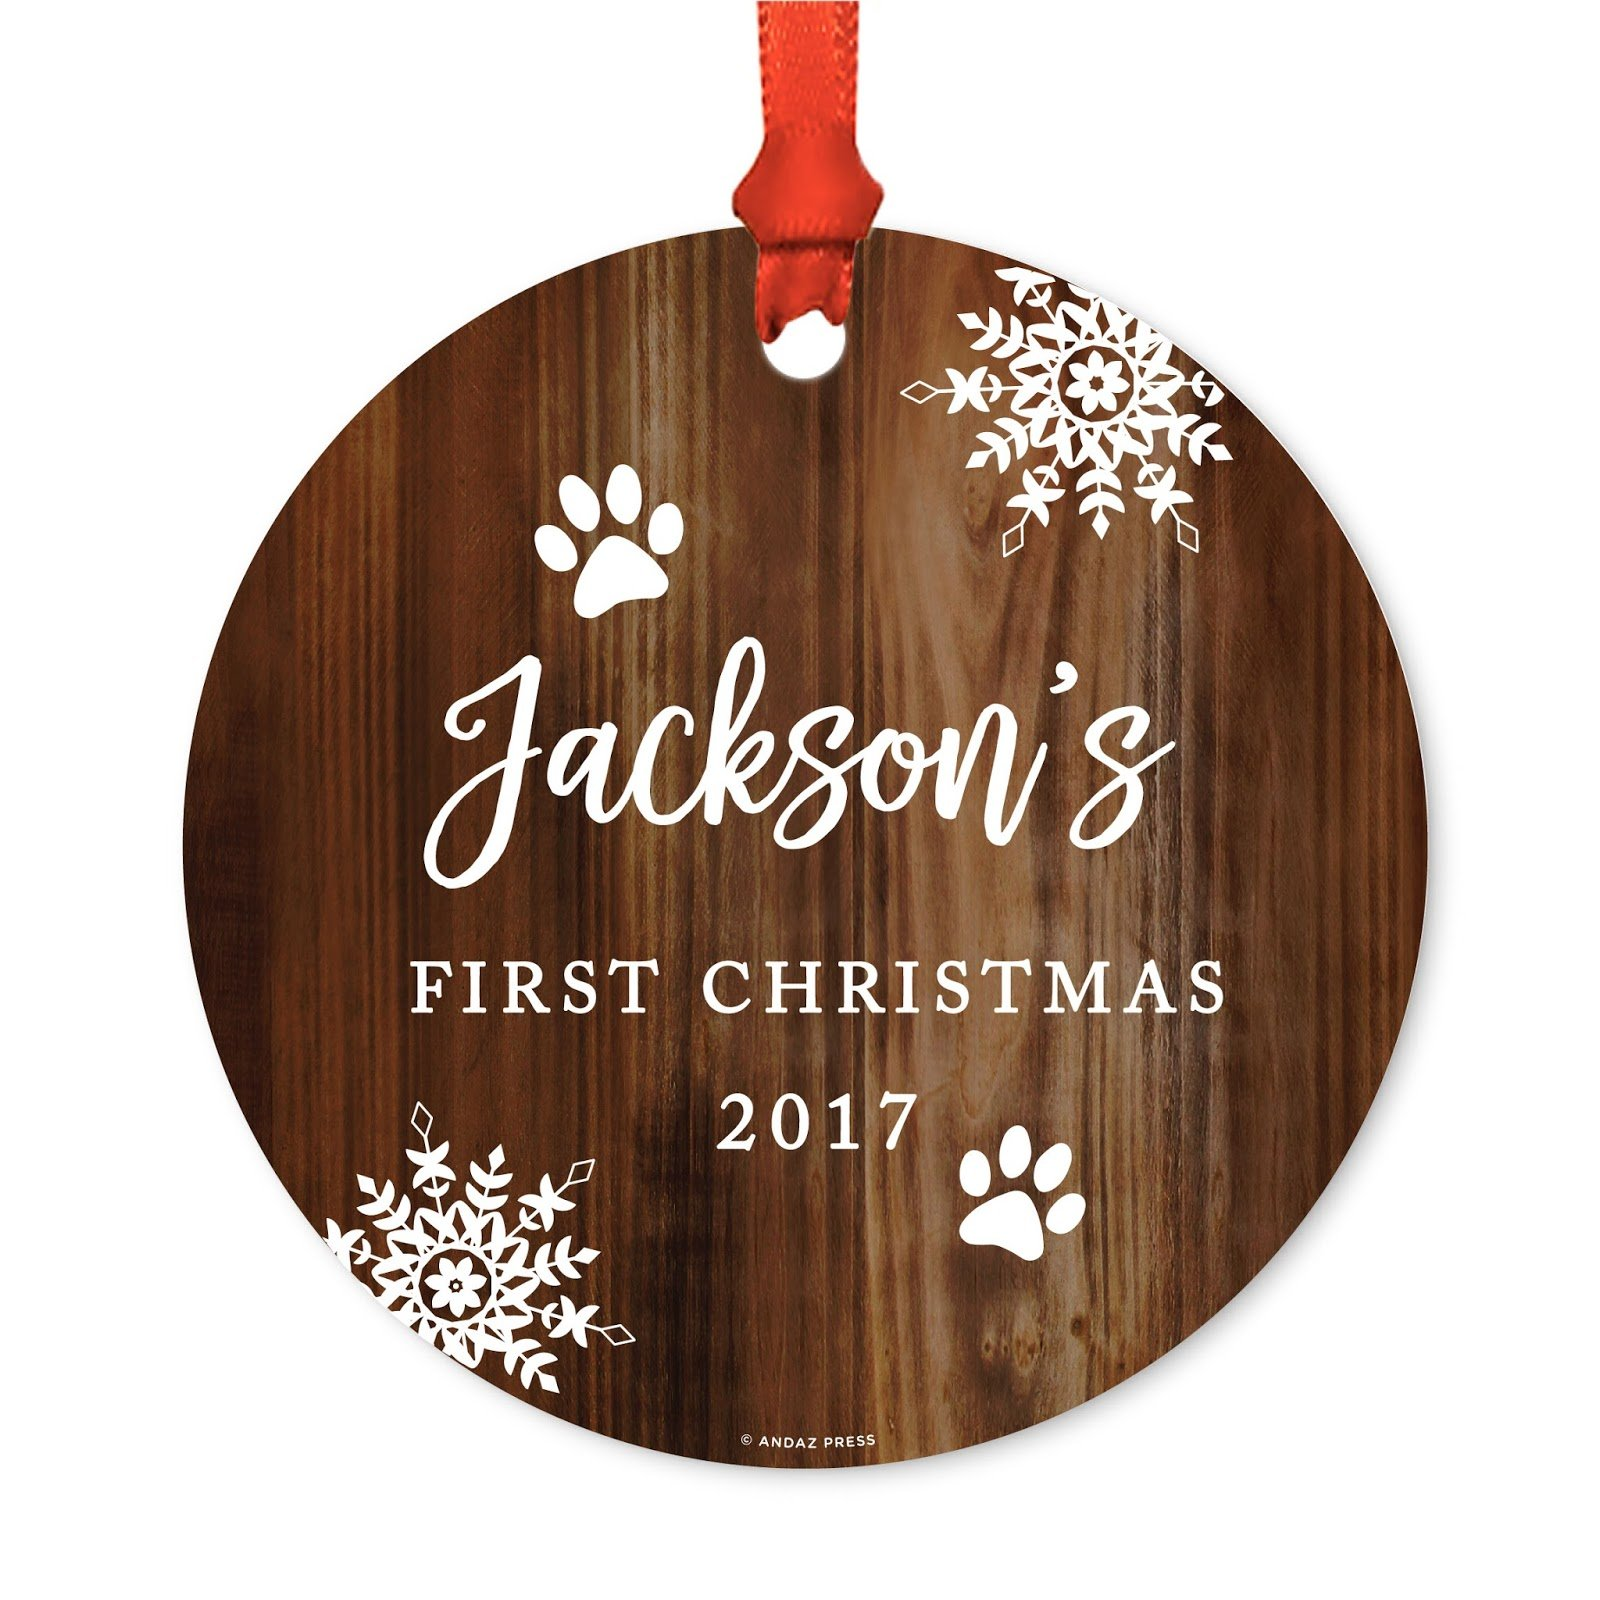 Andaz Press Personalized Dog Cat Pet Animal Round Metal Christmas Ornament, Jackson's First Christmas, 2018, Rustic Wood, 1-Pack, Includes Ribbon and Gift Bag, Custom Name